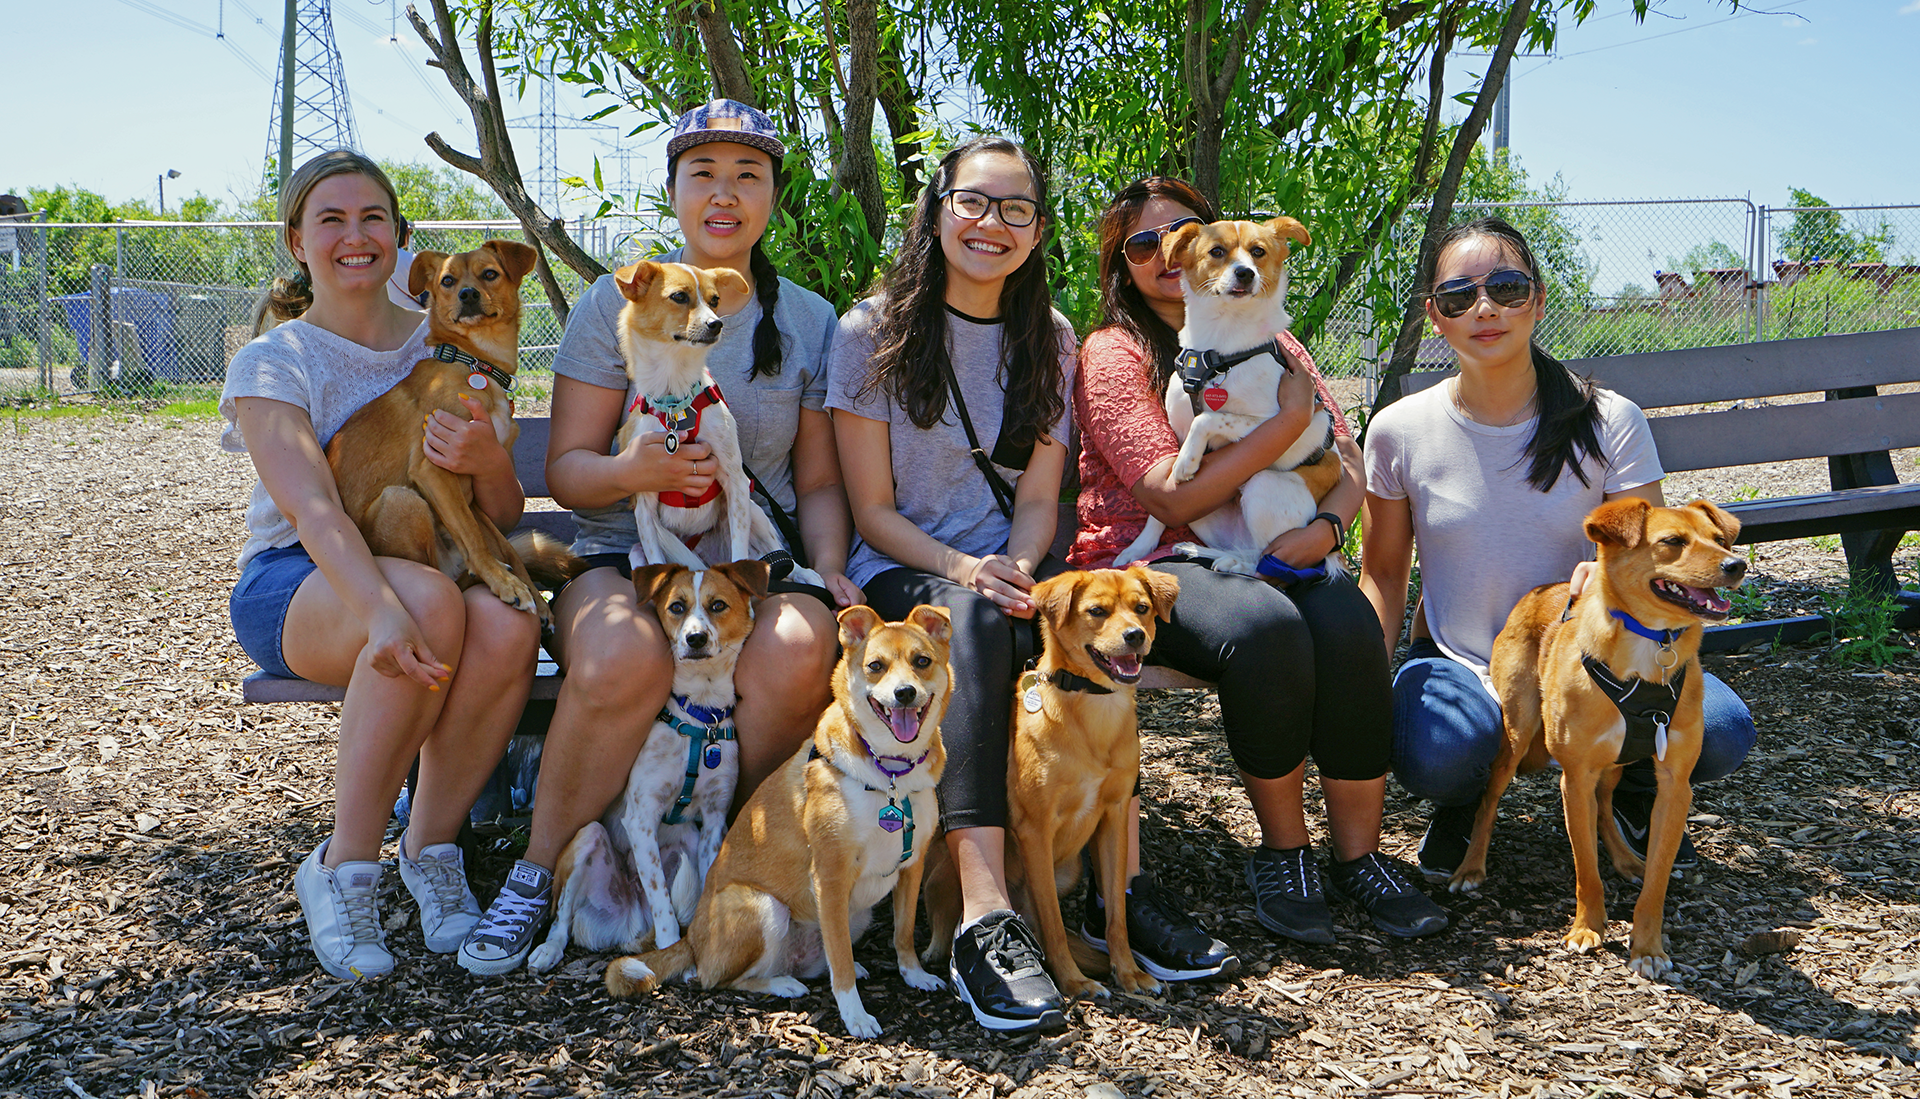 Family photo taken for the Dongs' 2nd birthday get together! Dogs from top left to bottom right: Ollie, Luna, Zorro, Aero, Elsie, Zappa, Charlie.